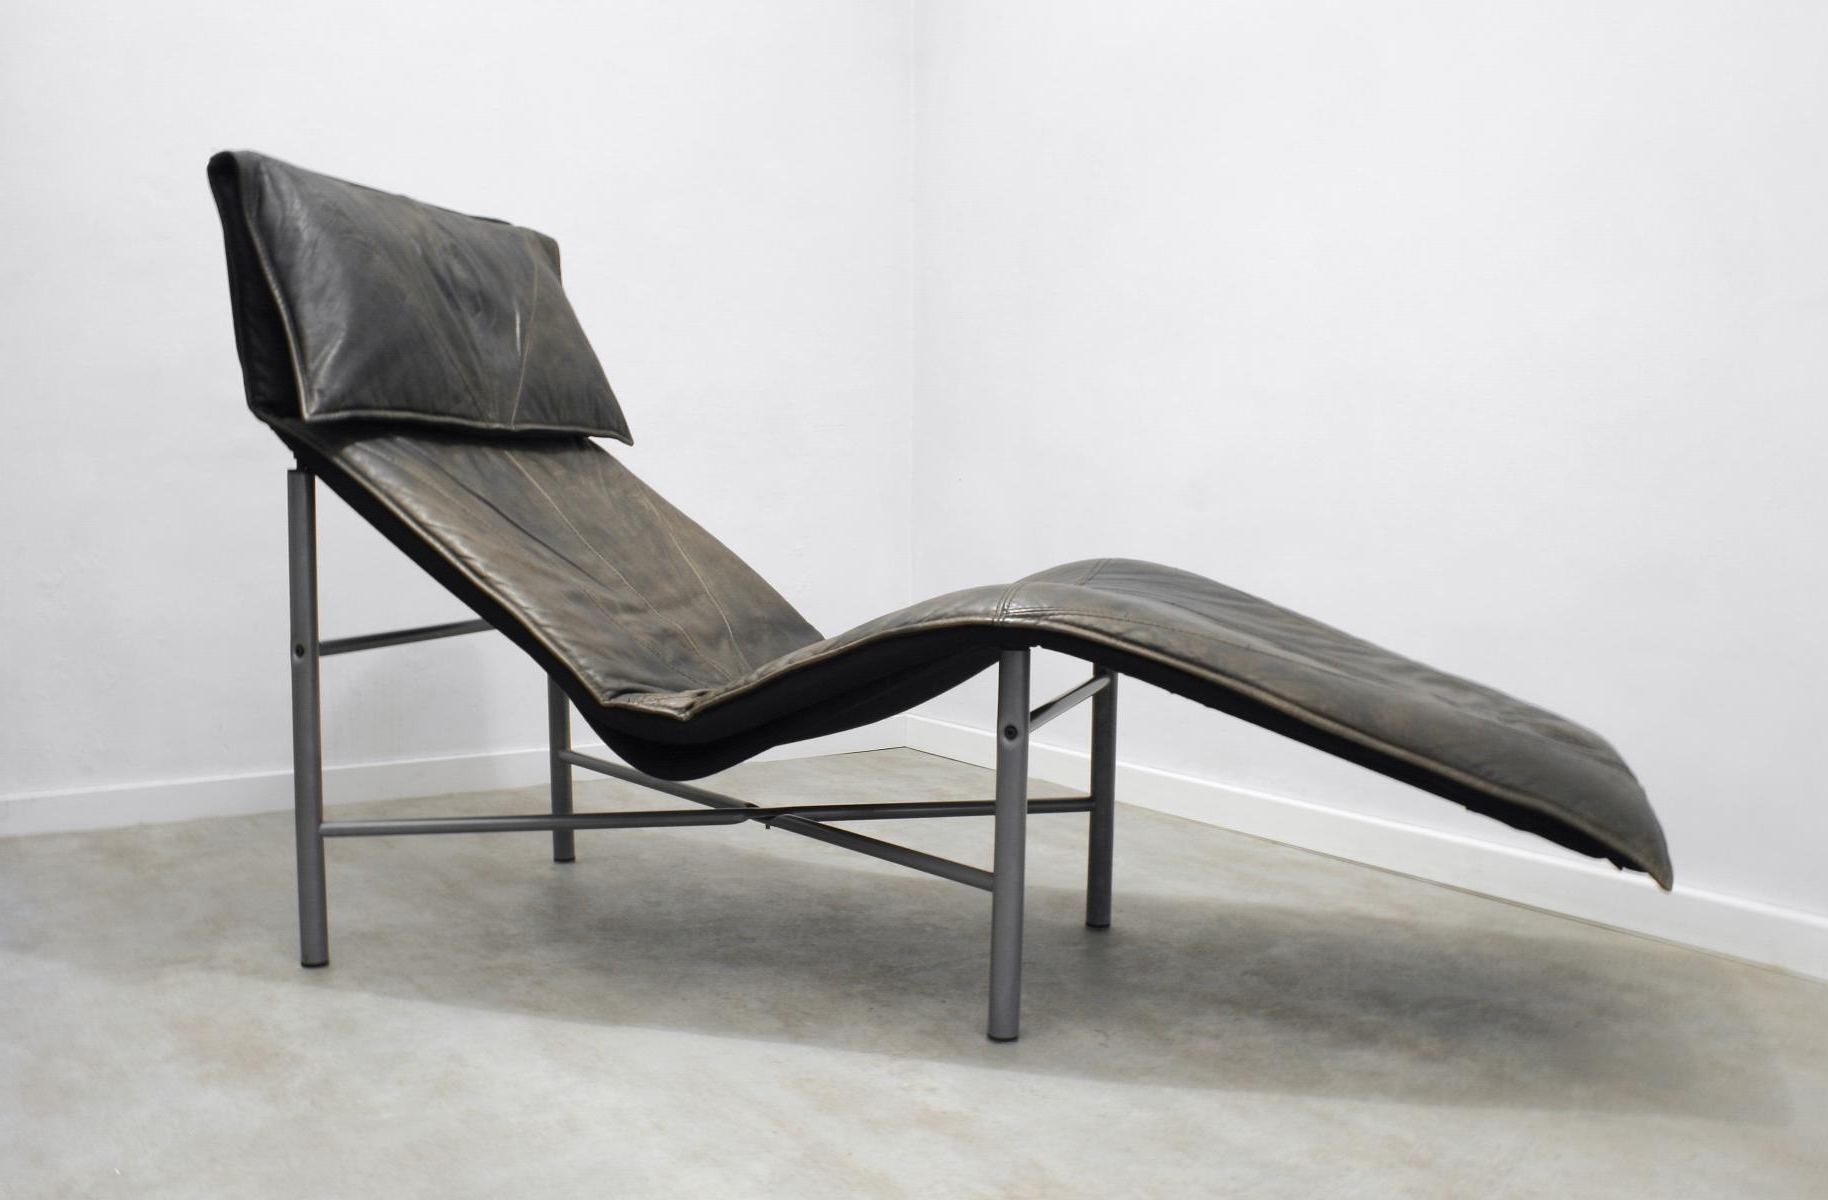 Popular Brown Leather Skye Chaise Loungetord Björklund For Ikea, 1980S For Ikea Chaise Lounges (View 15 of 15)